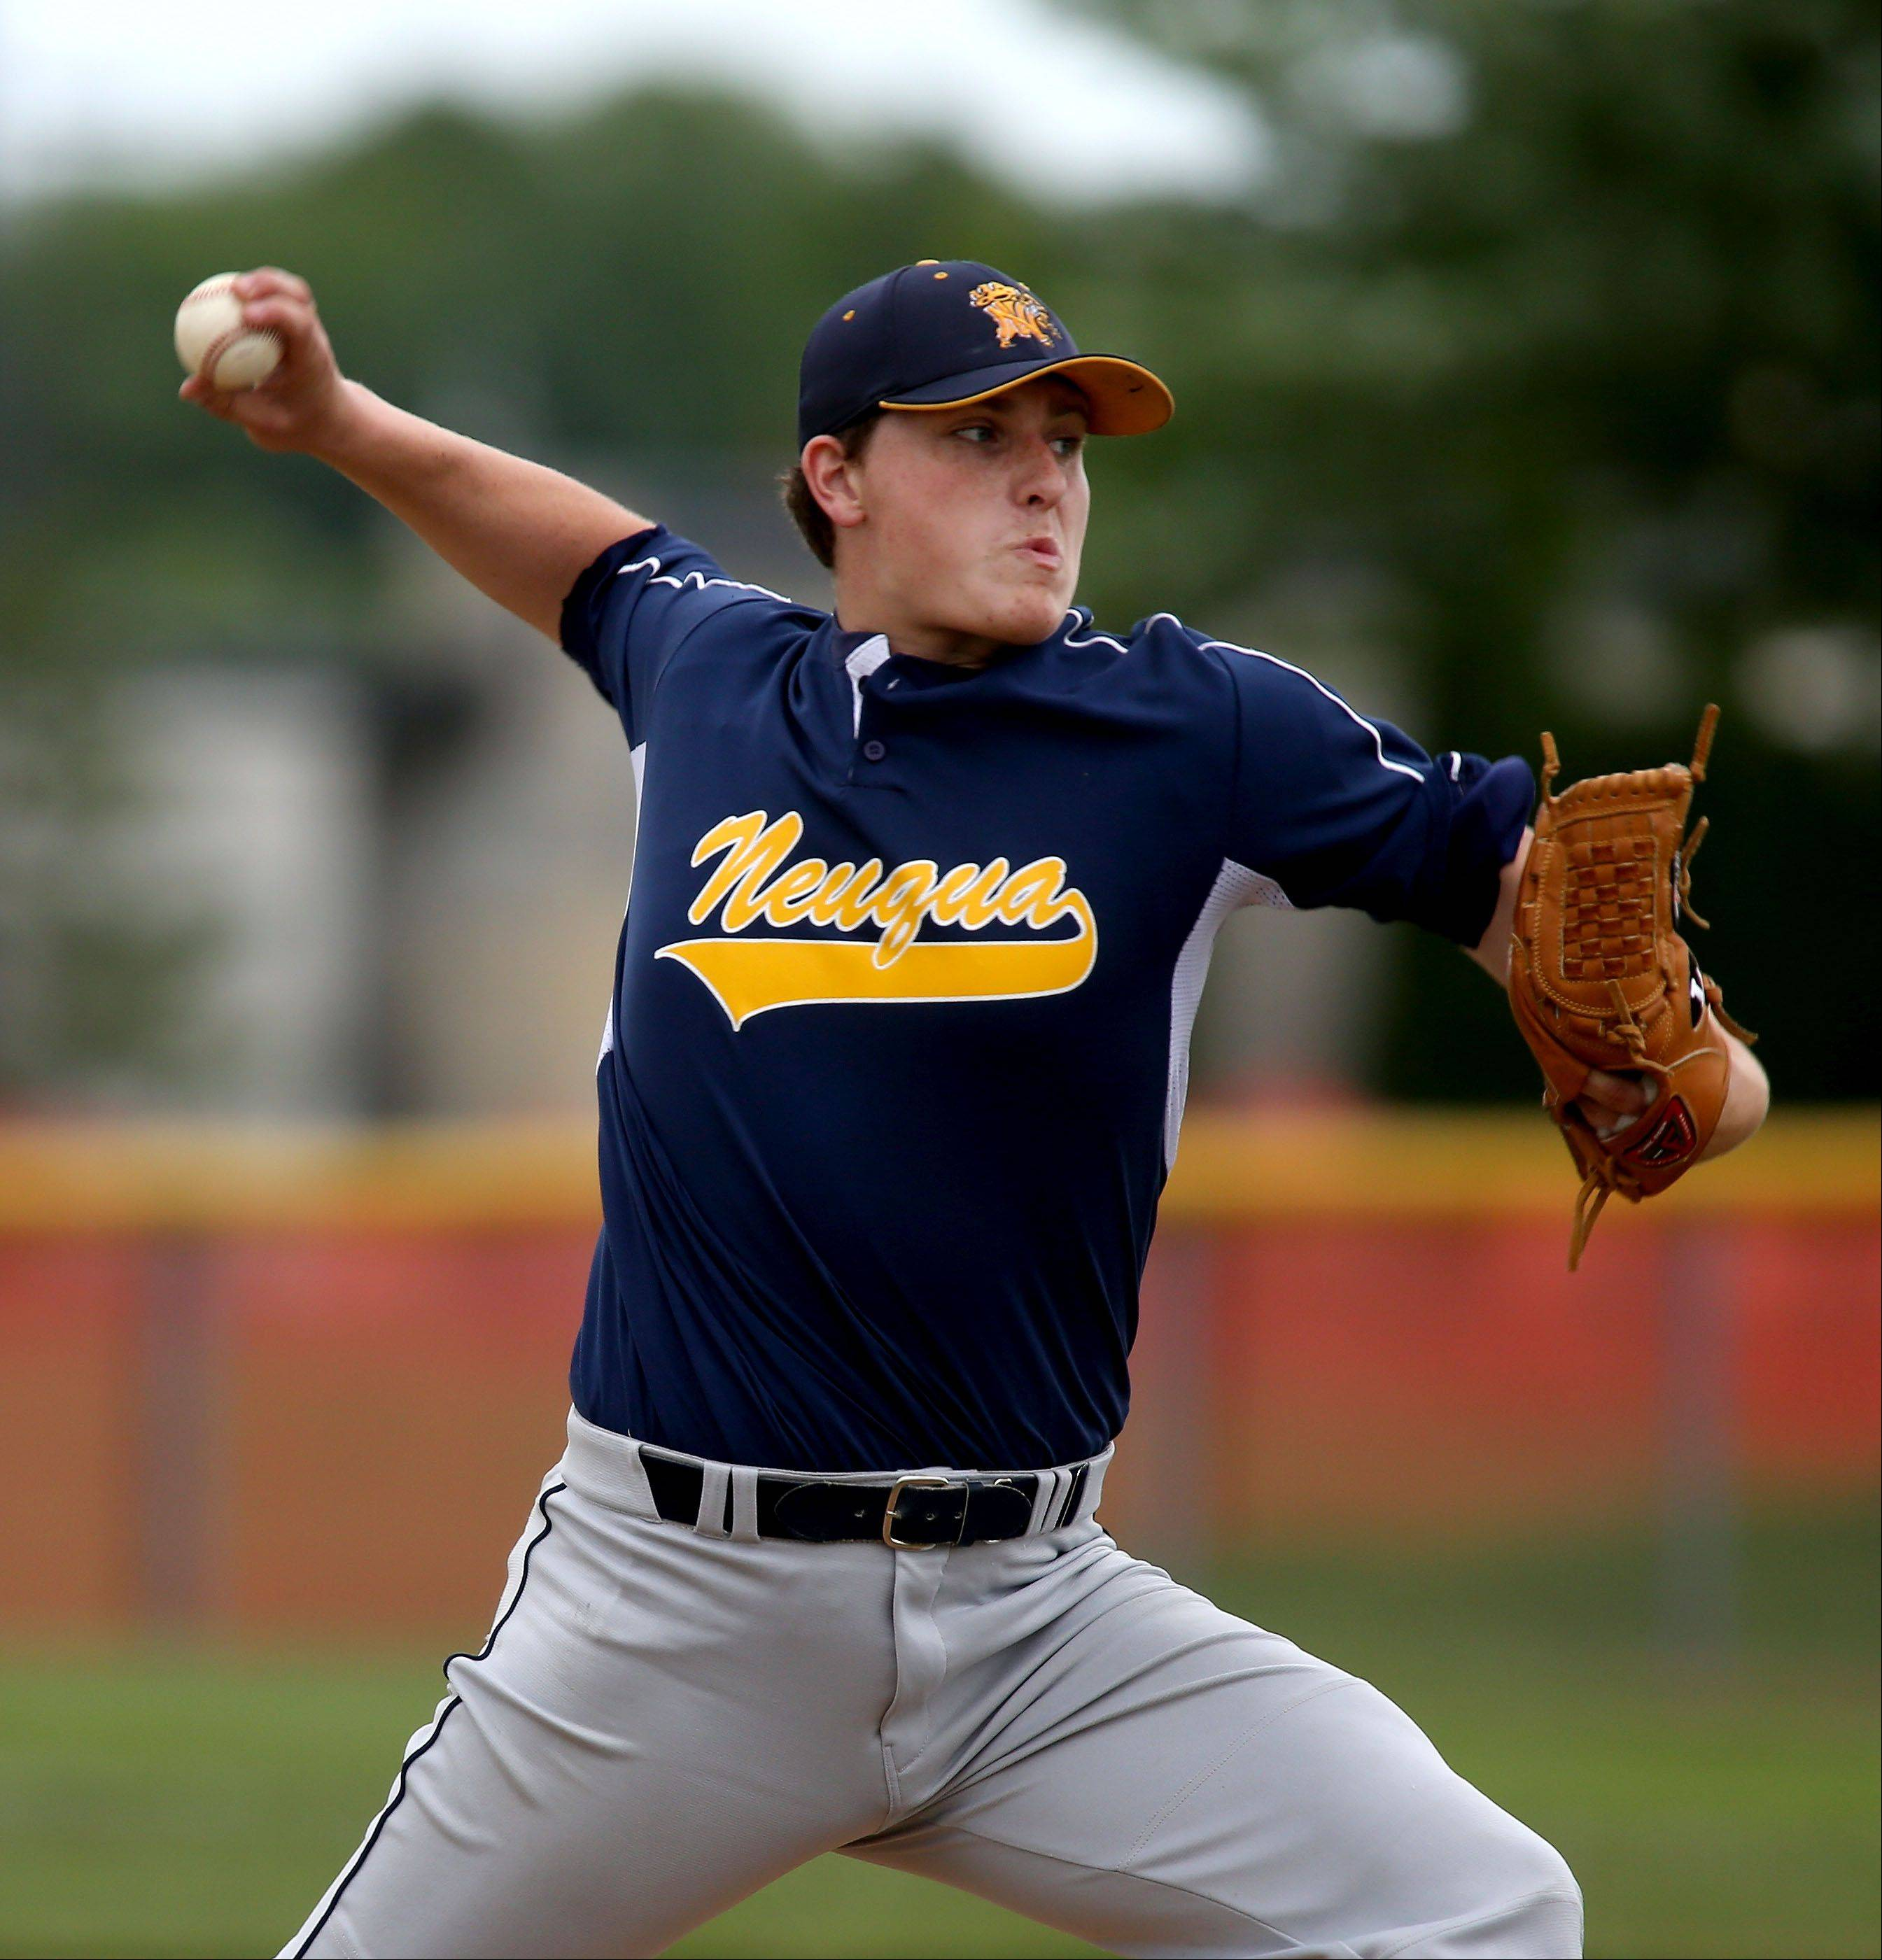 Cody Coll of Neuqua Valley pitches to Plainfield North in Class 4A sectional semifinals on Friday in Naperville.